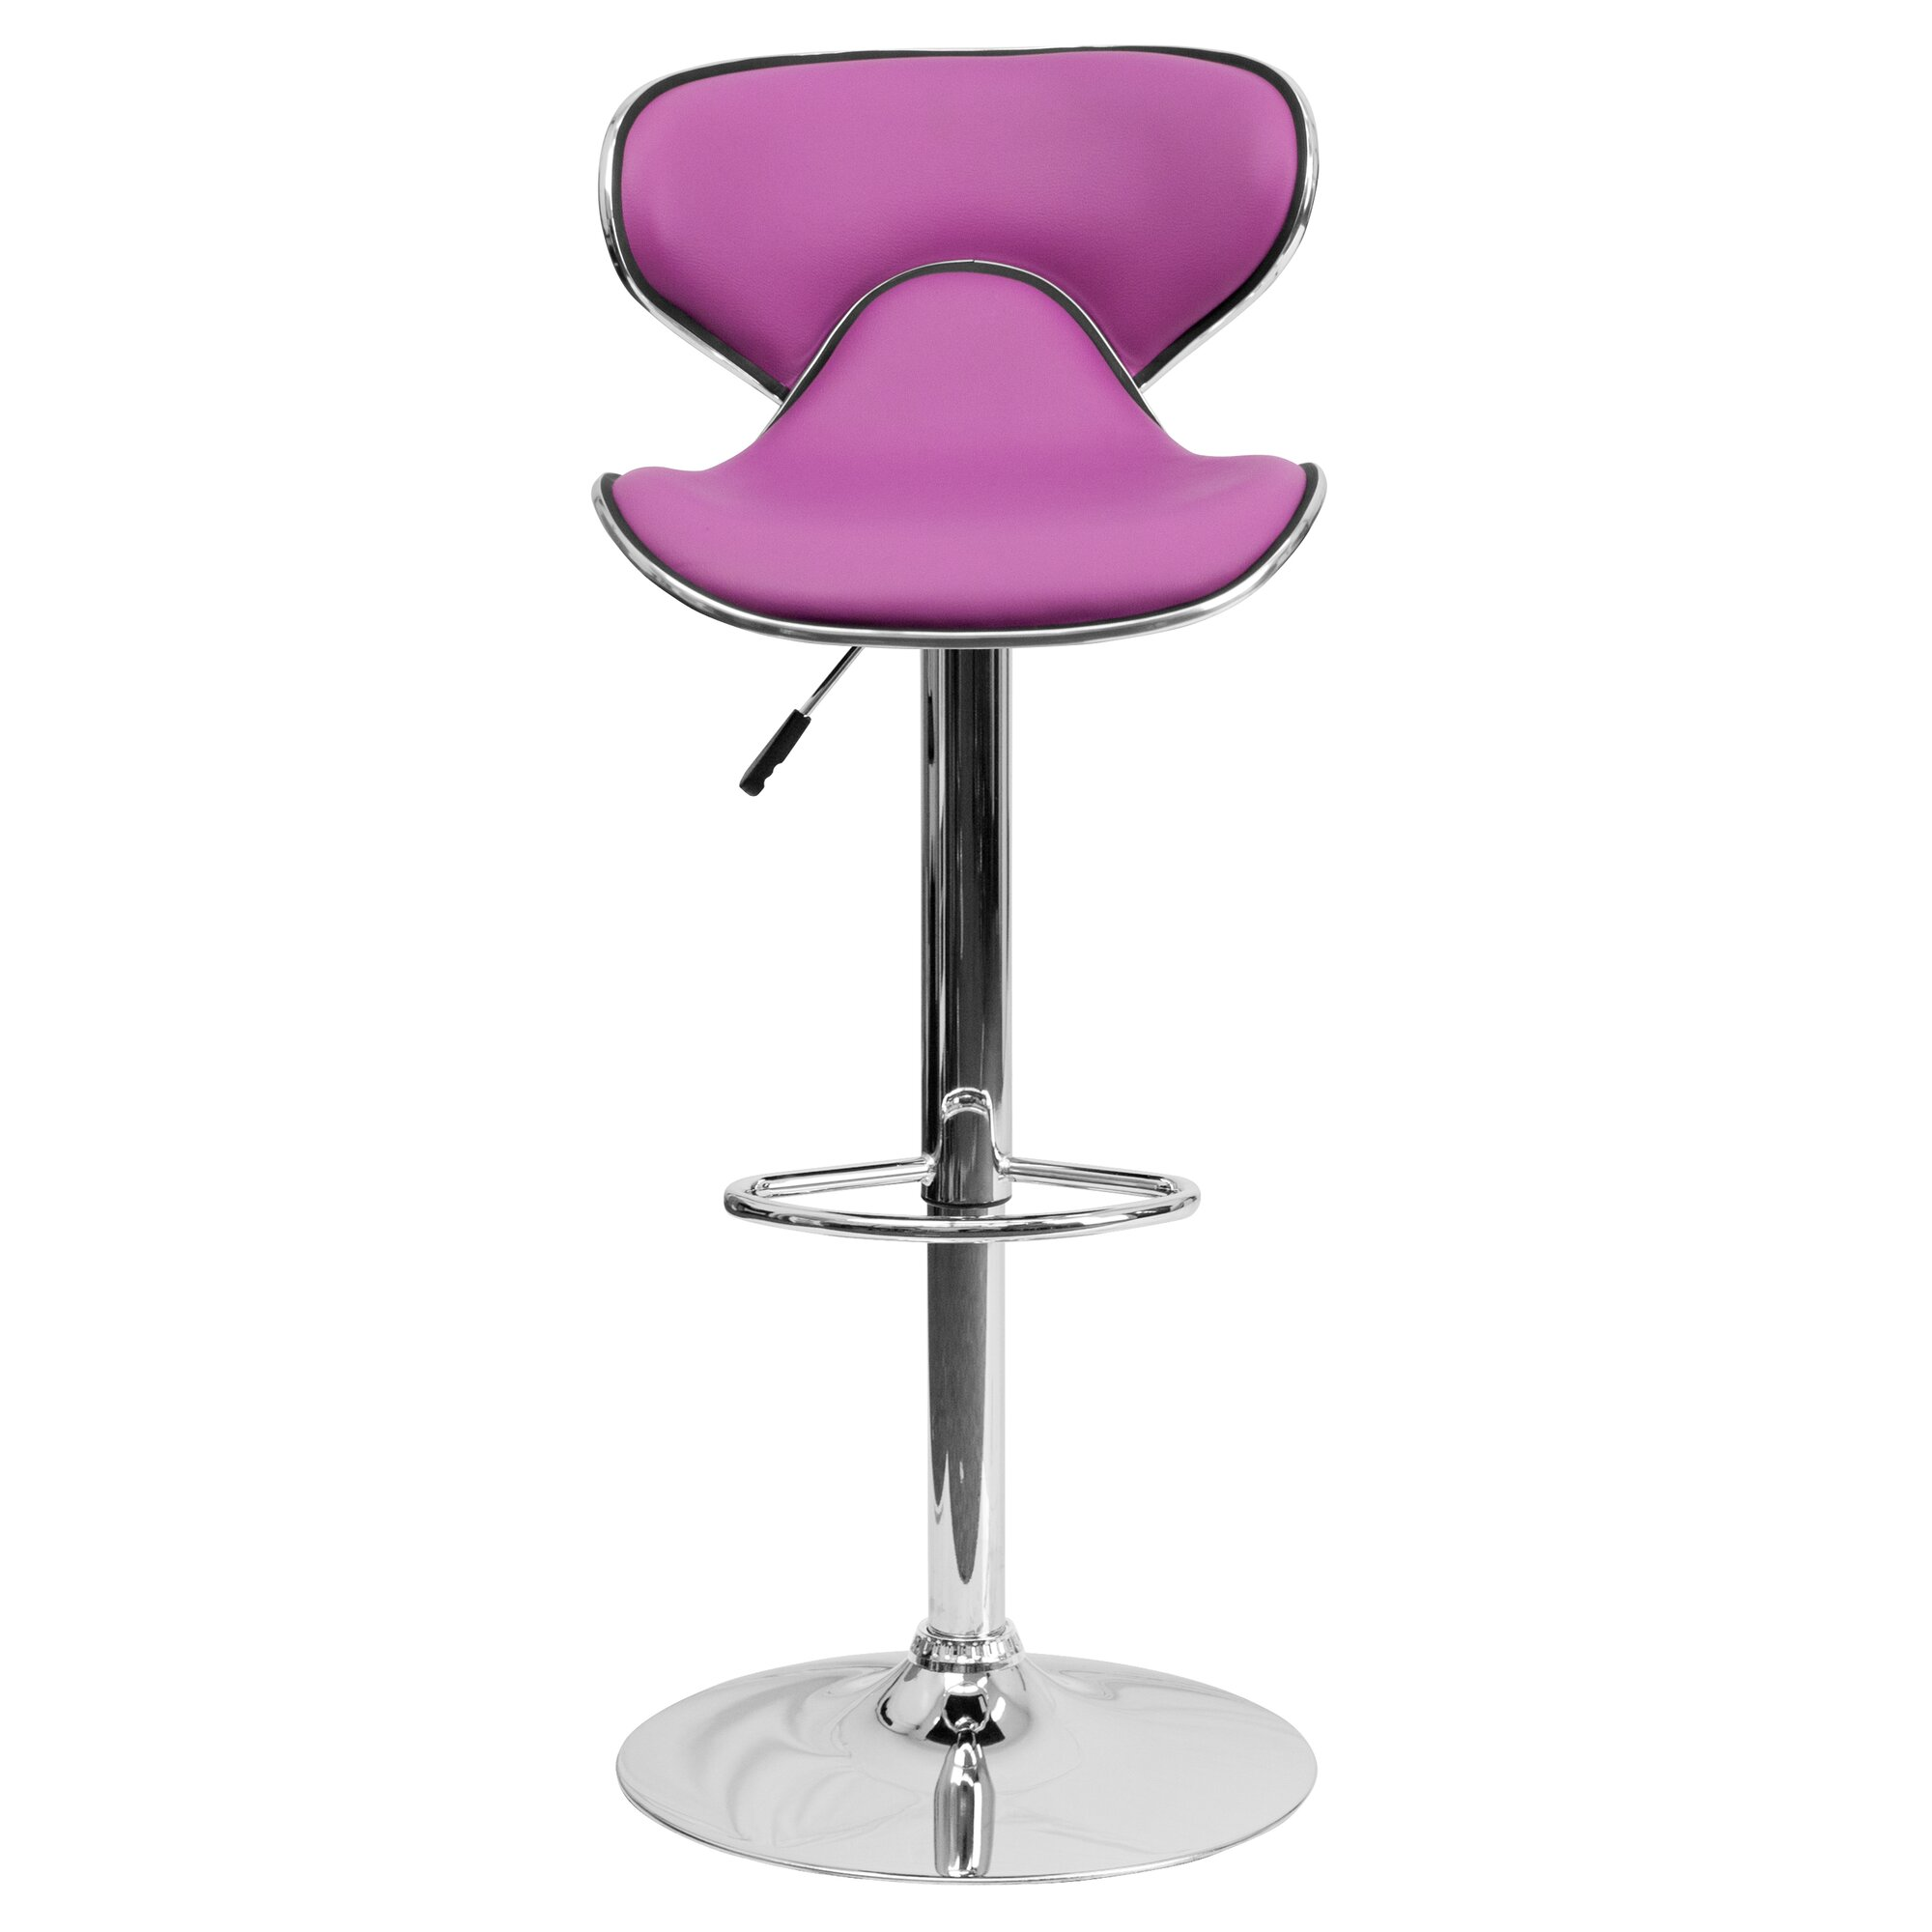 Modern kitchen bar stools - Marlon Adjustable Height Swivel Bar Stool